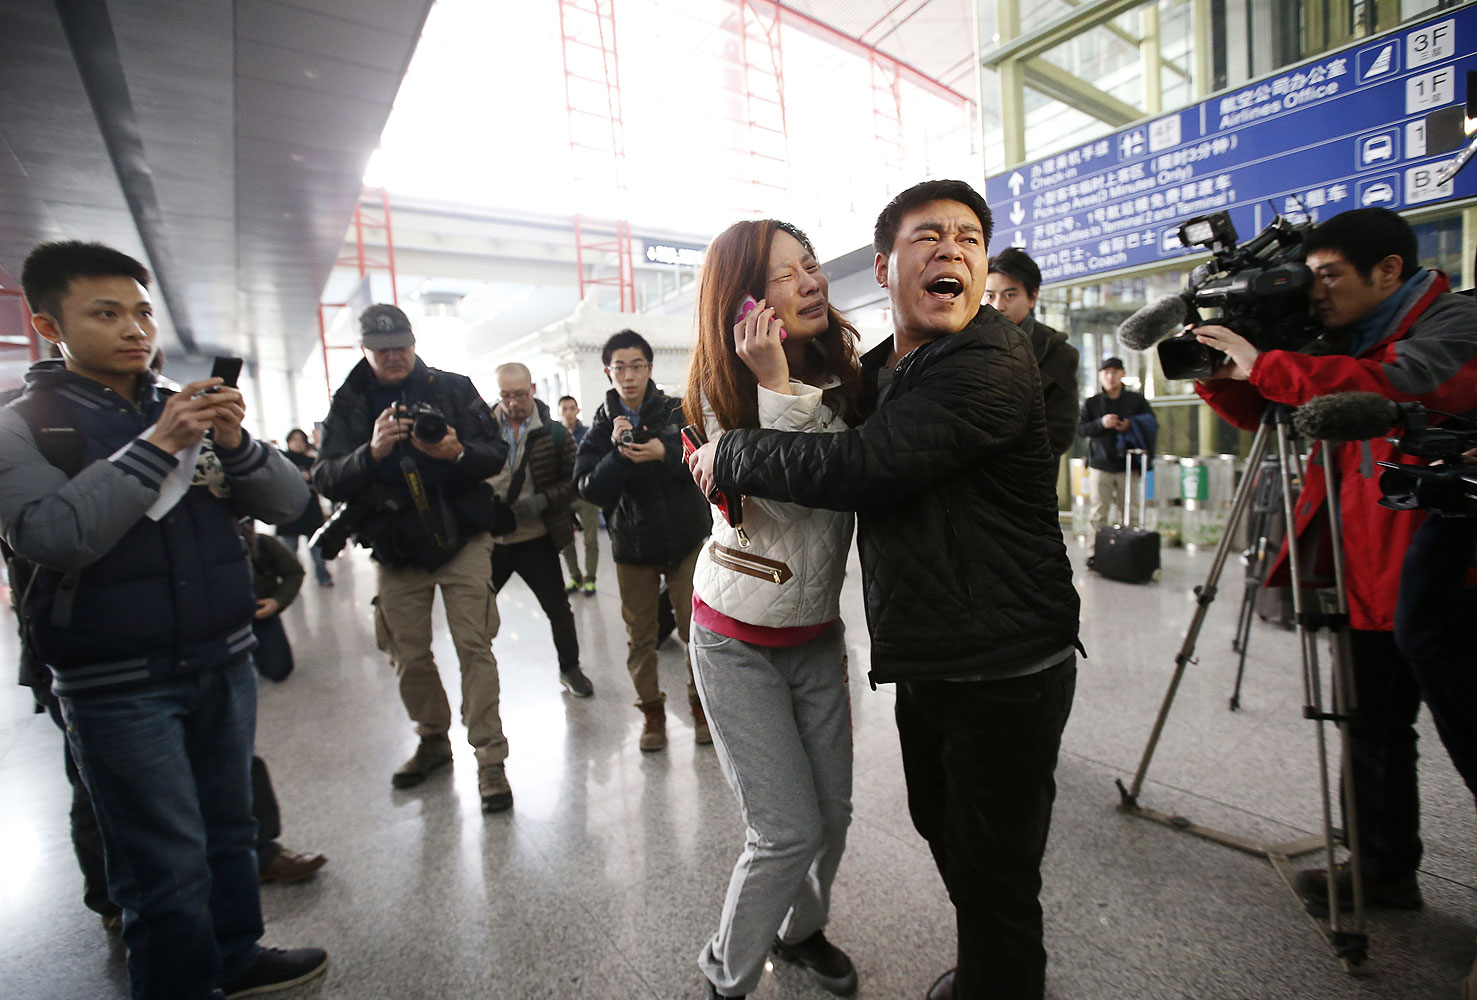 A relative of a passenger onboard Malaysia Airlines flight MH370 at the Beijing Capital International Airport, March 8, 2014.